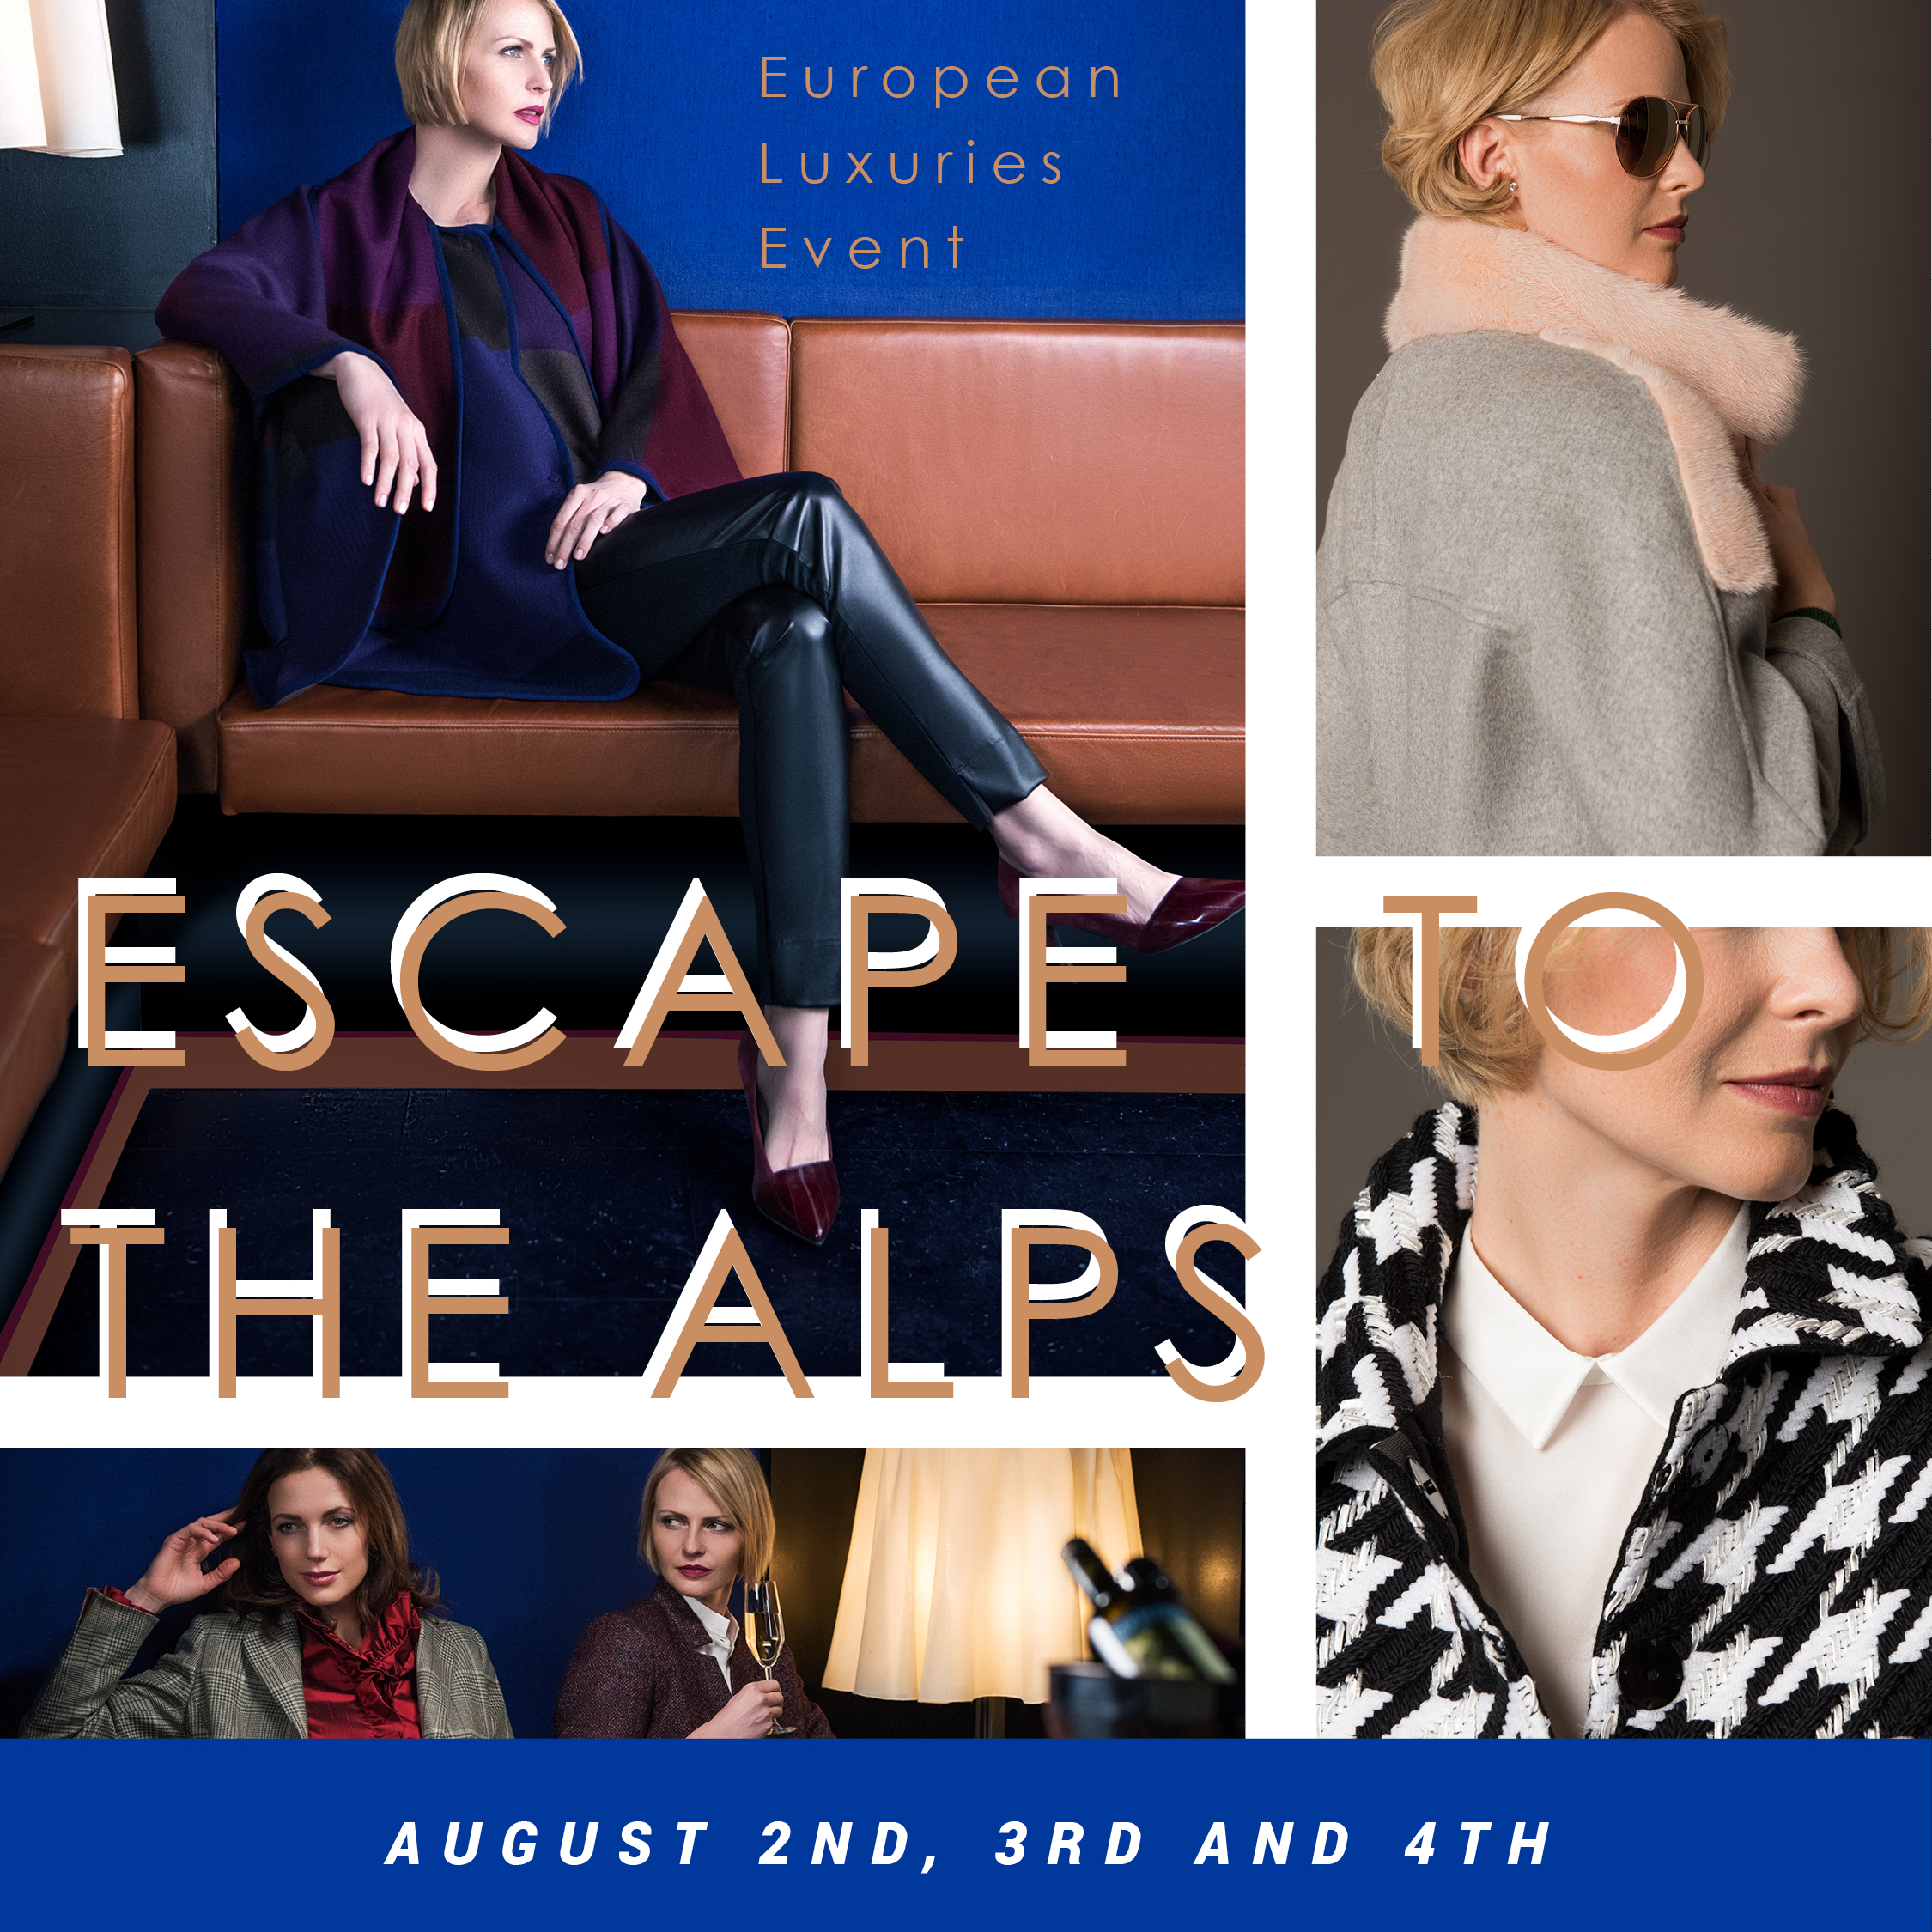 European Luxuries Event: Escape to the Alps | Featuring Algo of Switzerland